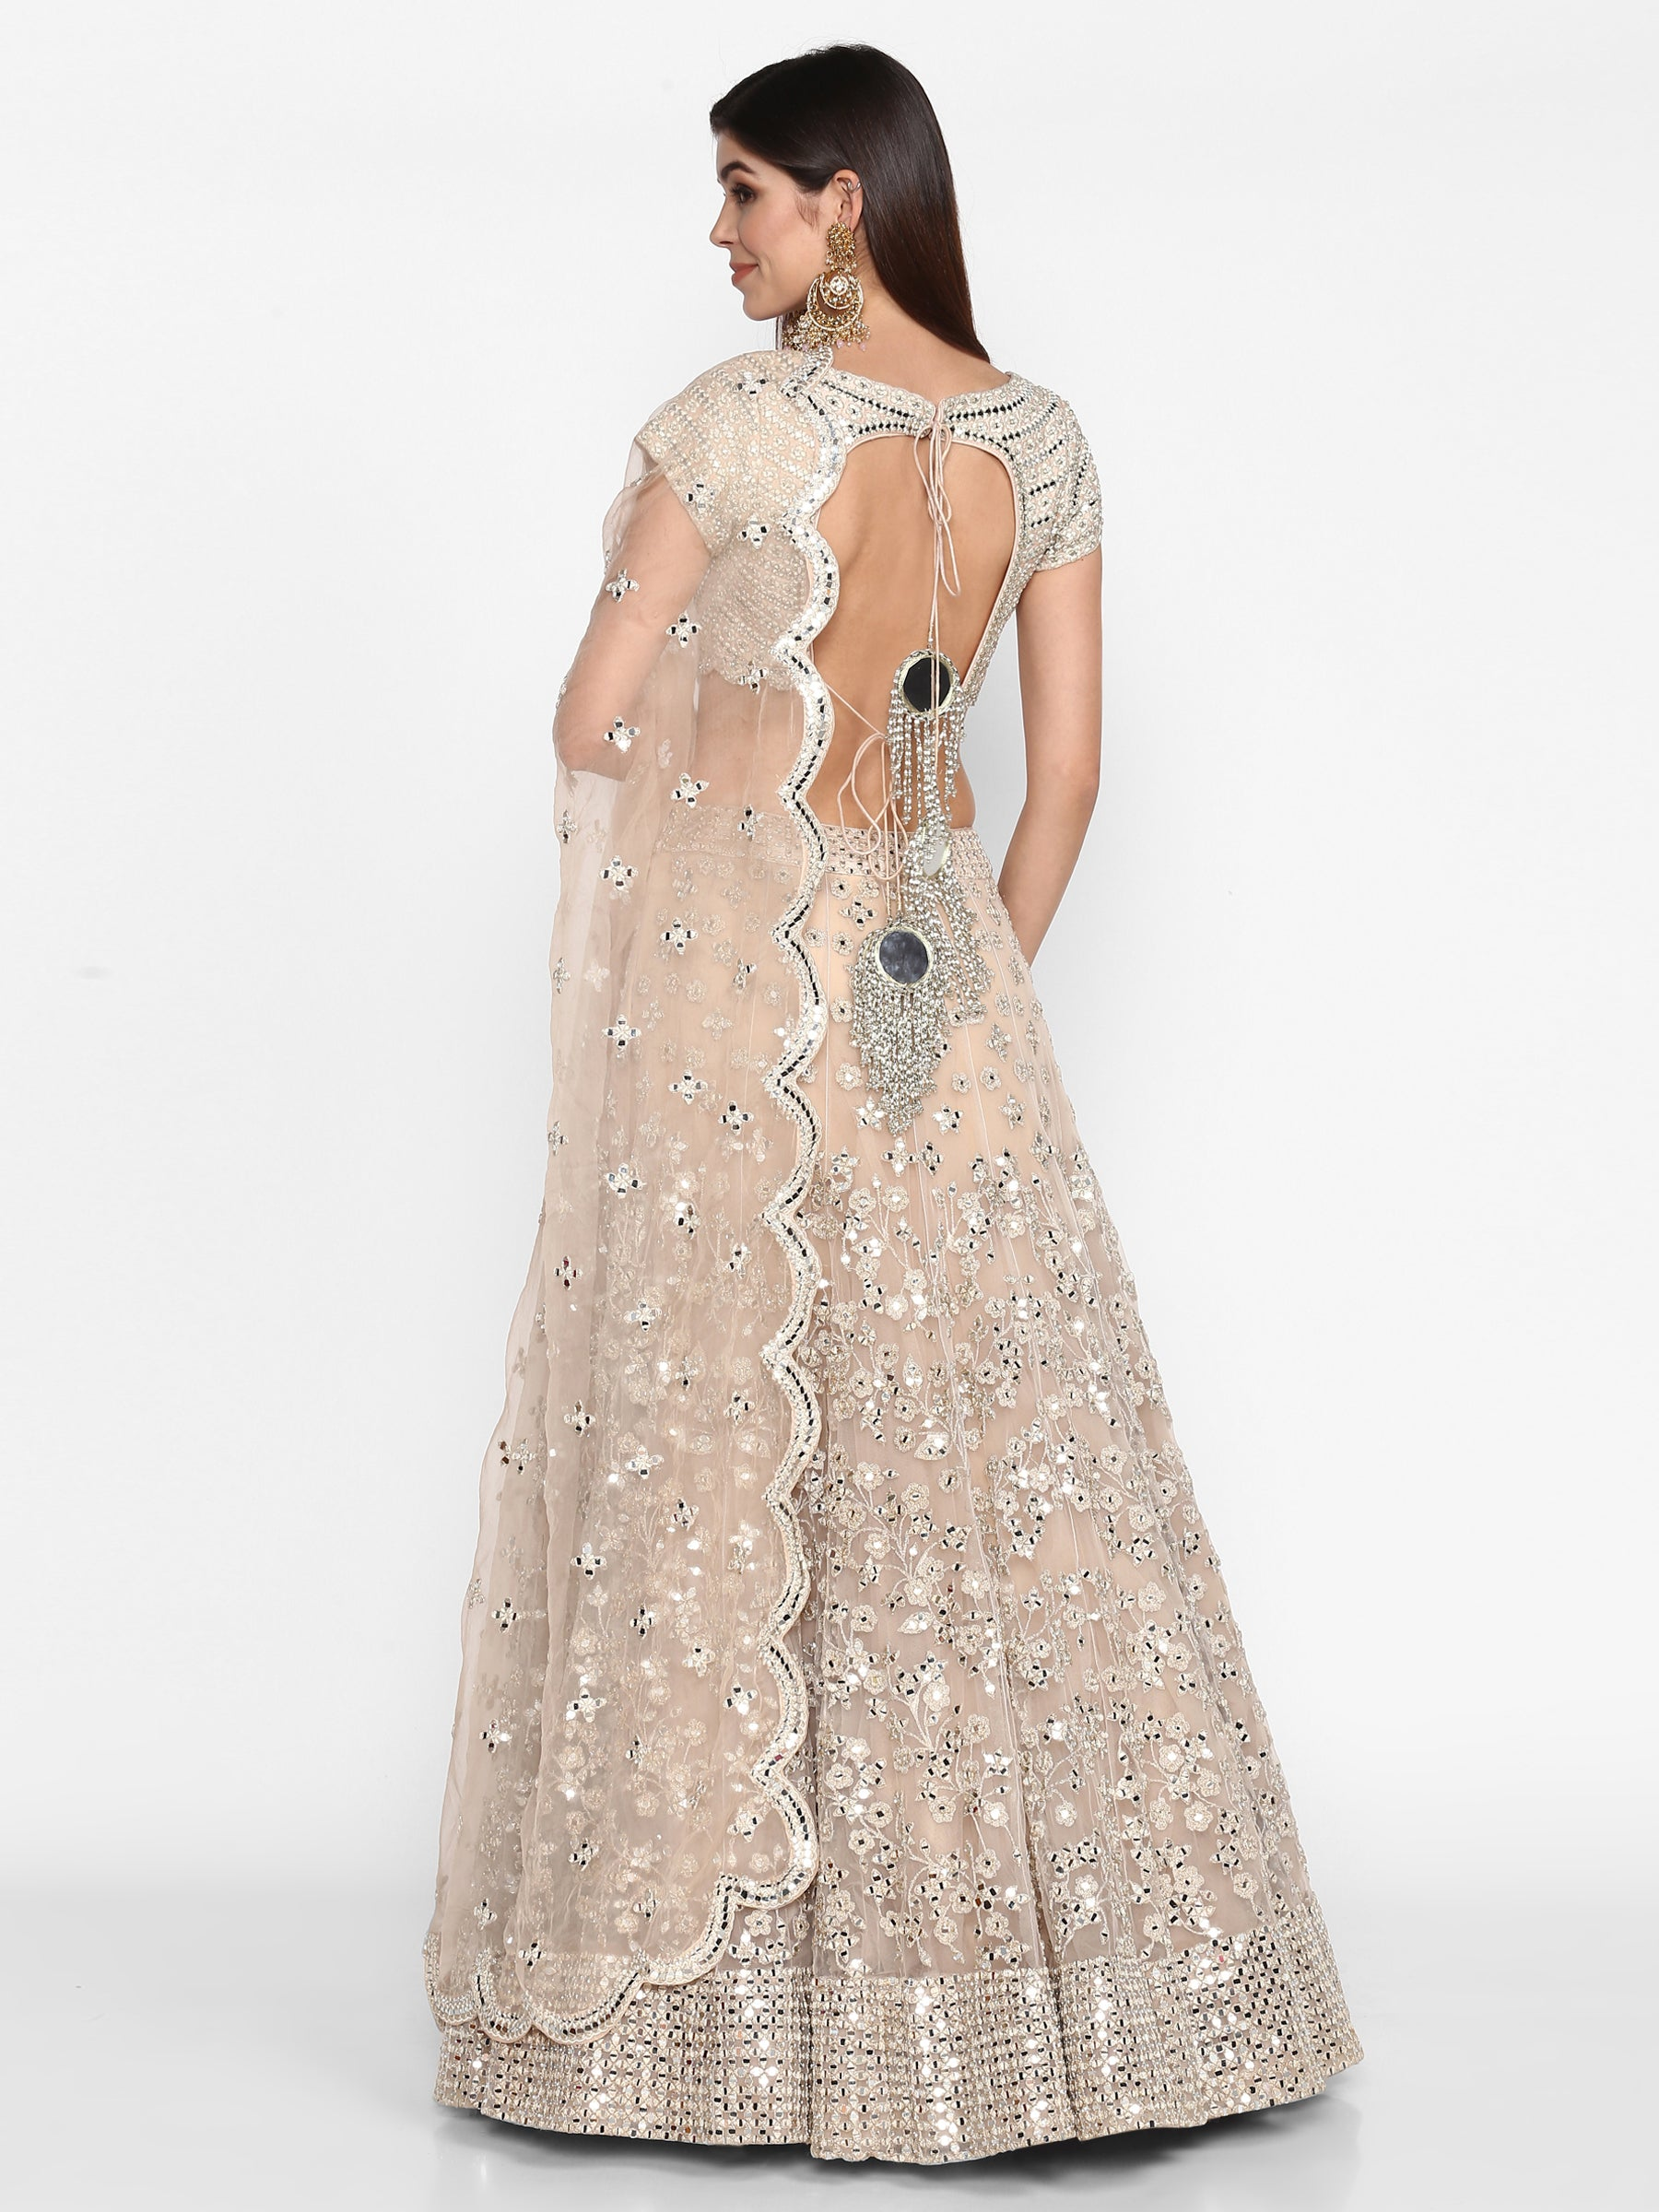 Abhinav Mishra Blush  Lehenga Set - The Grand Trunk